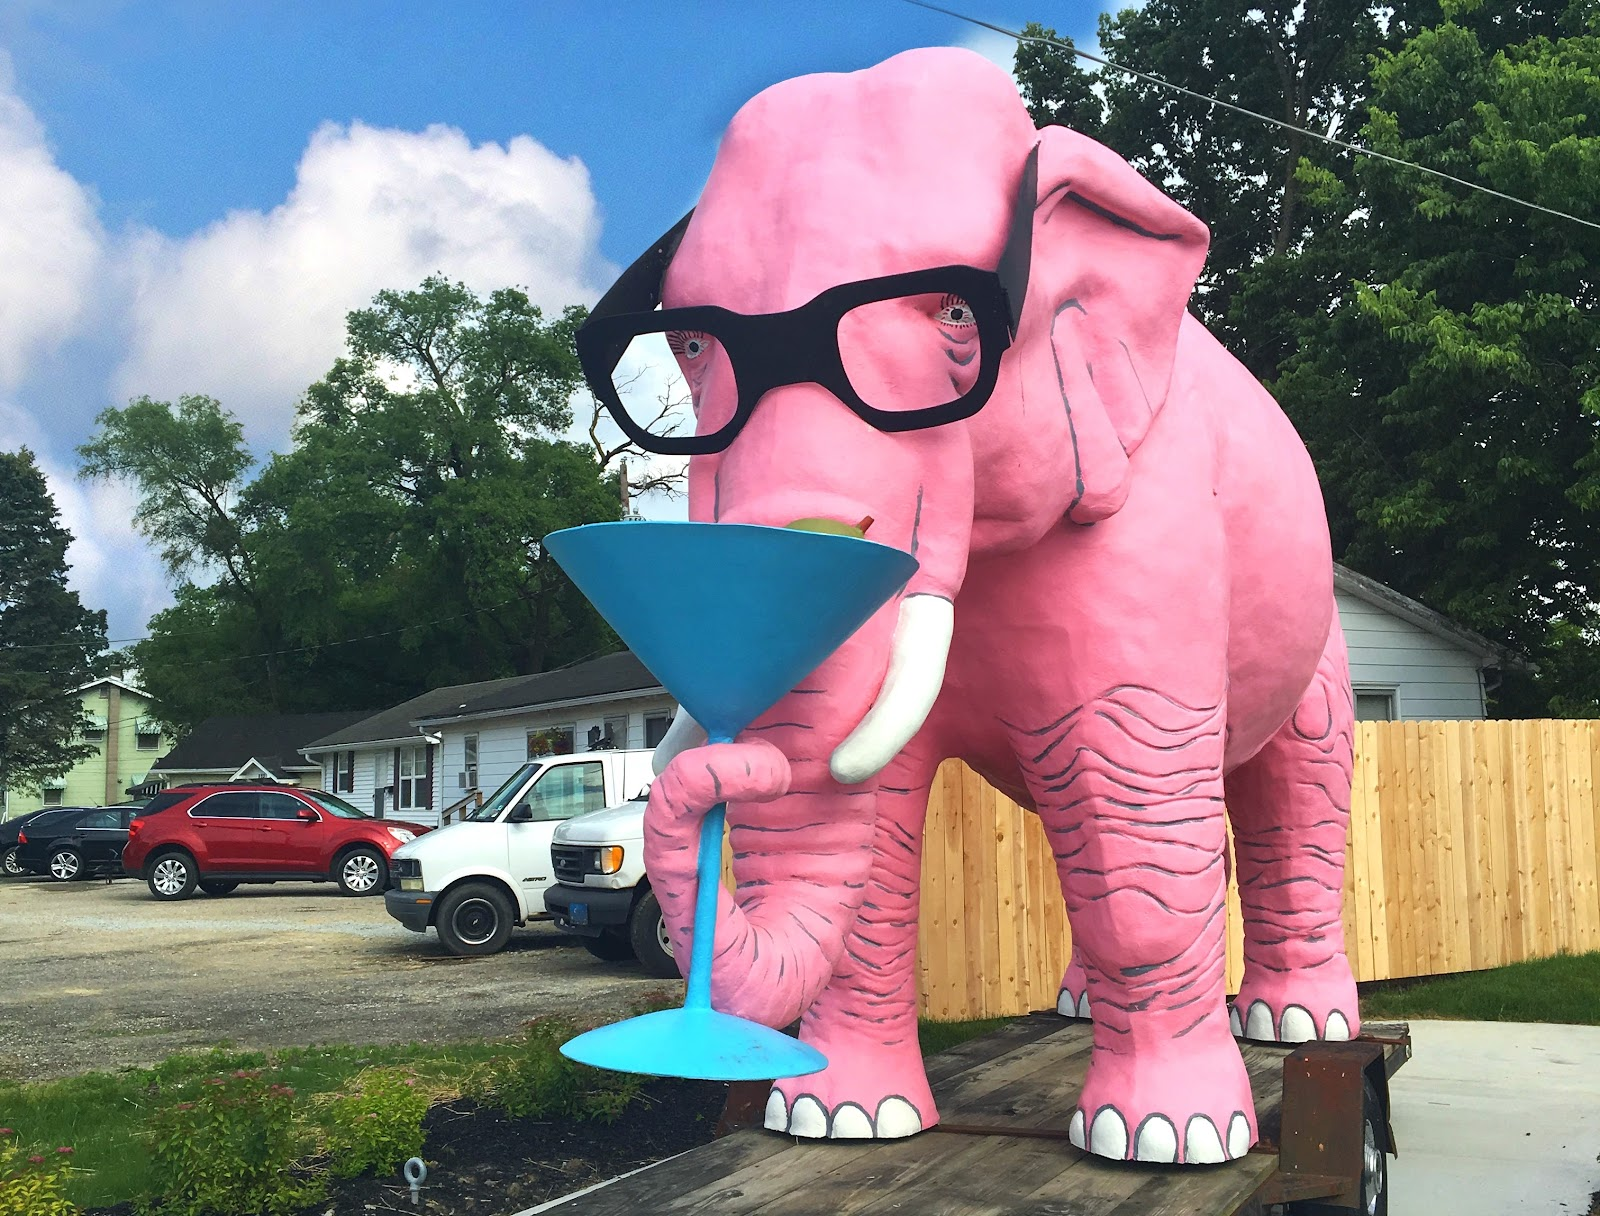 Indiana roadside attractions